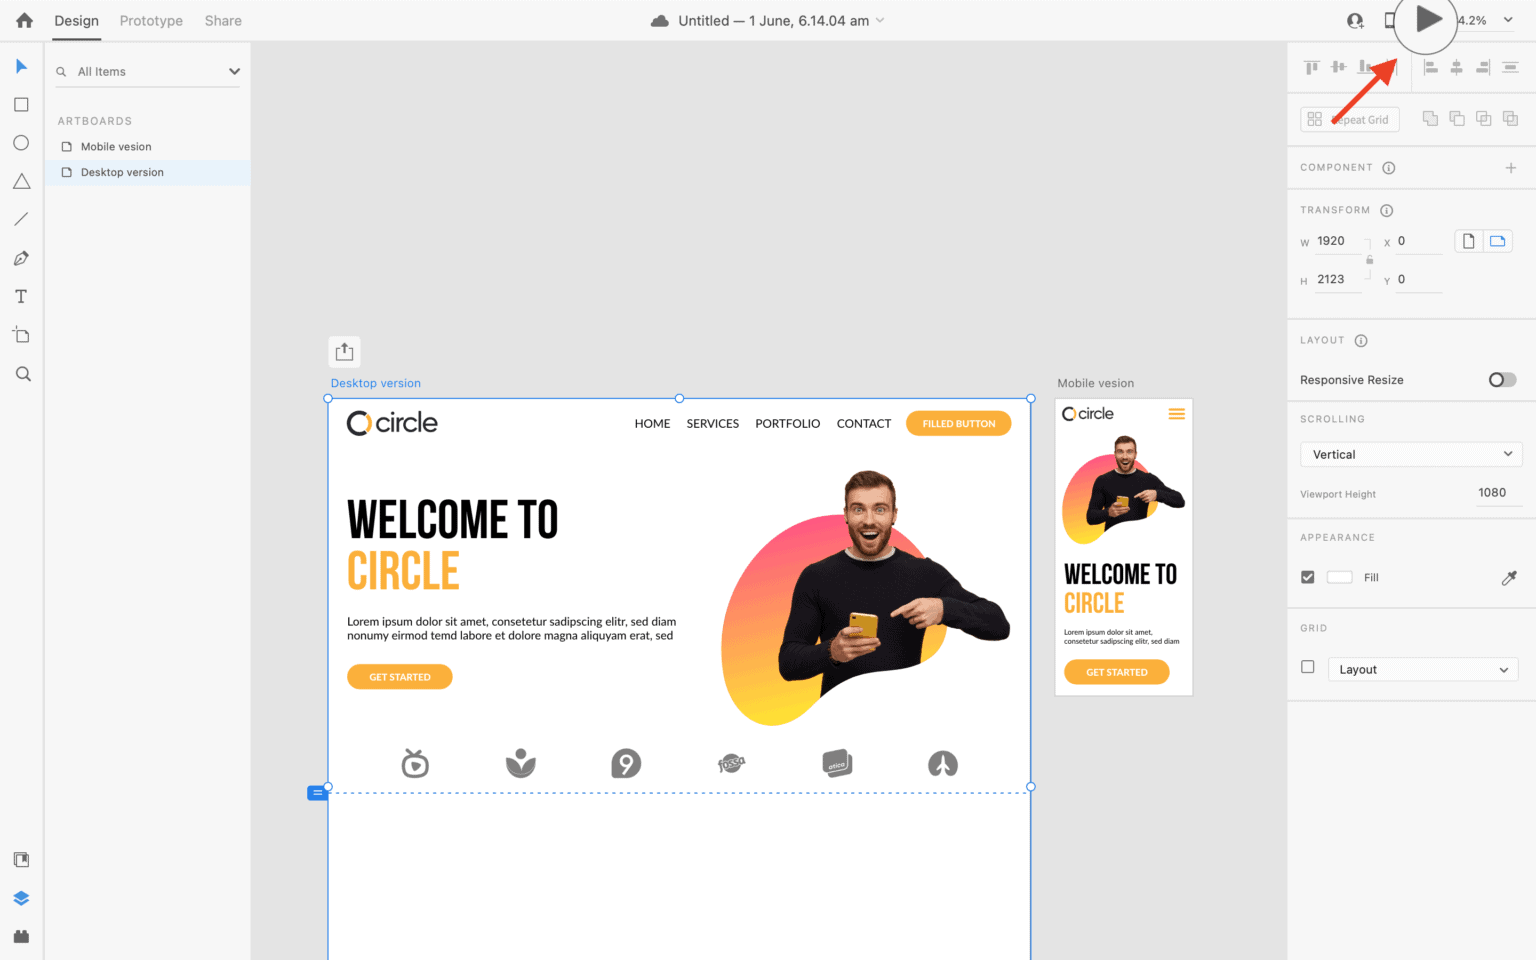 preview your design using the preview button